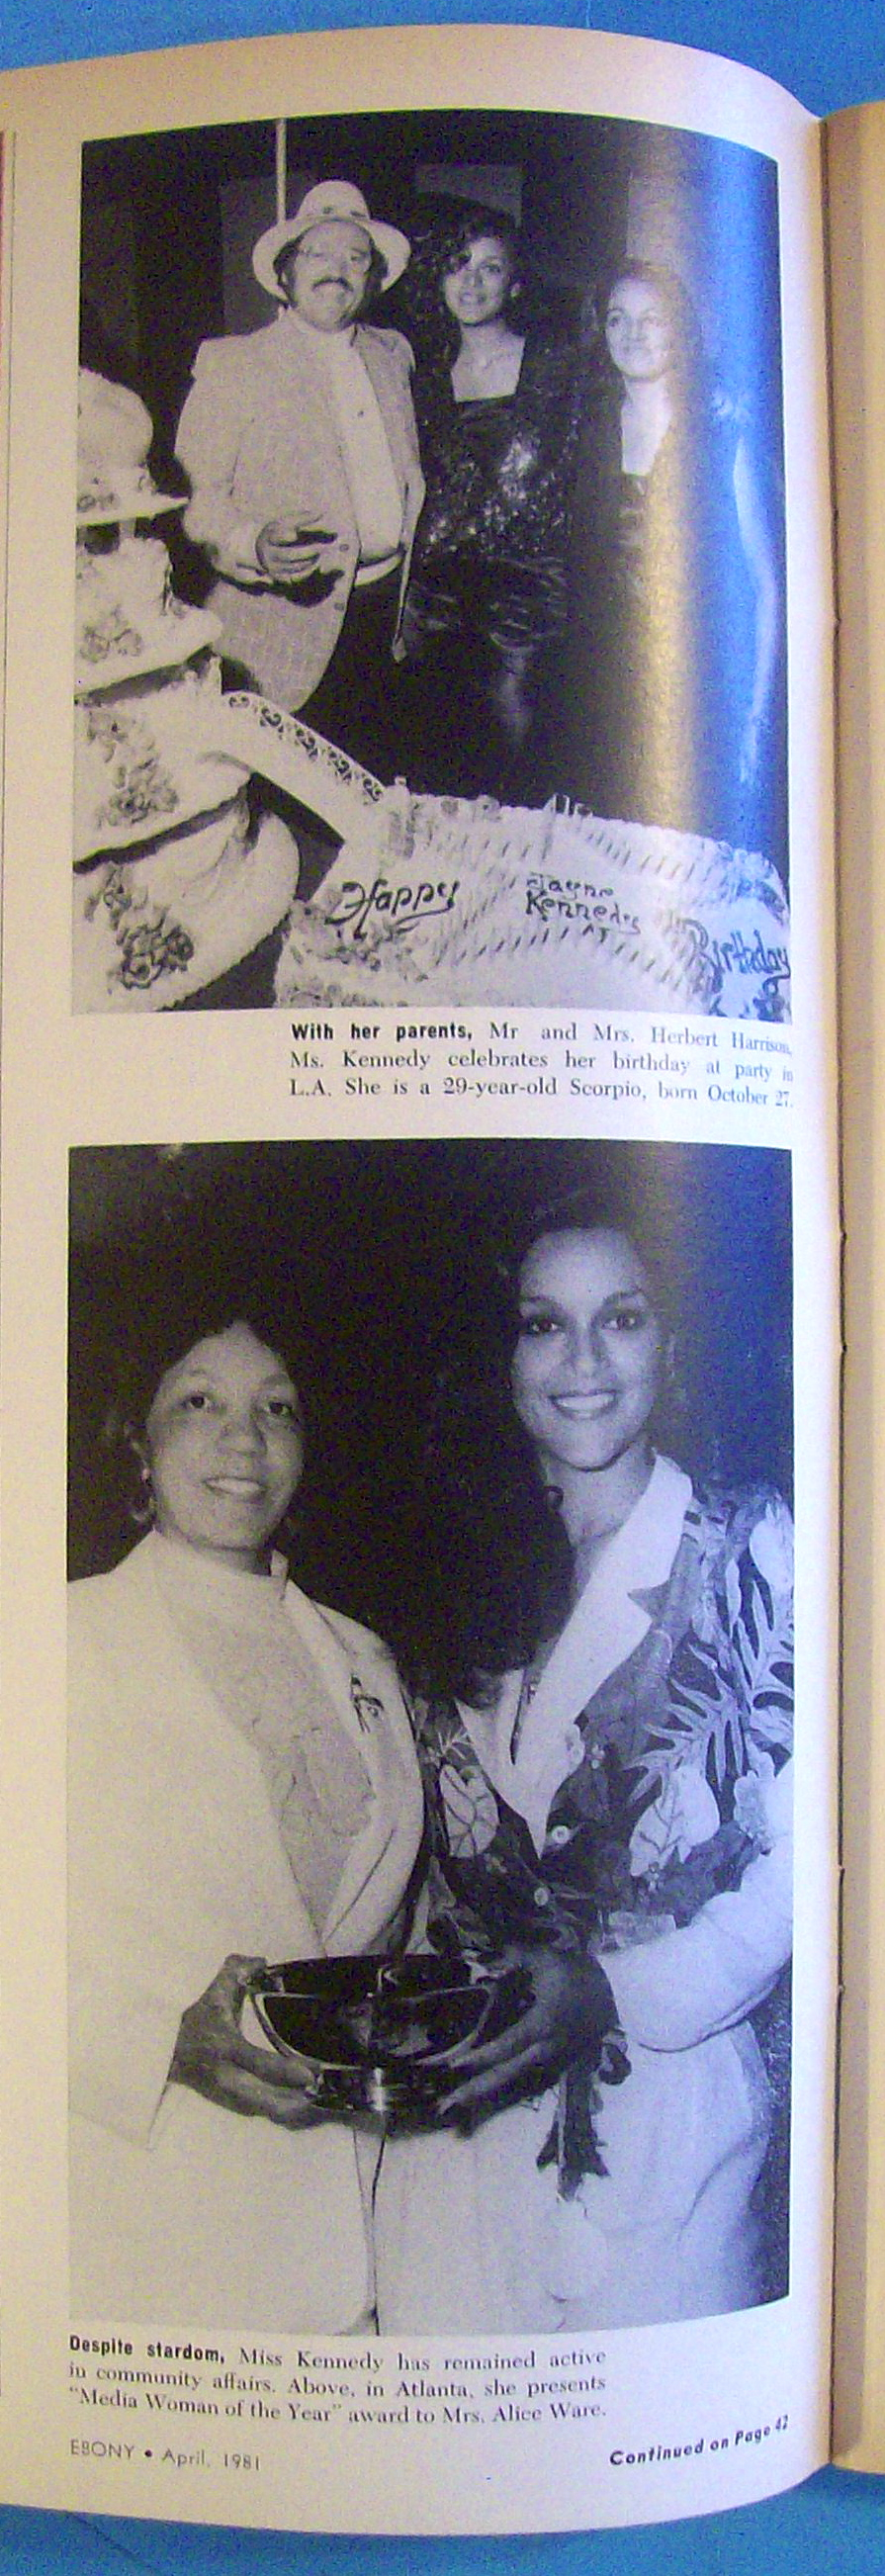 Re: Jayne Kennedy Overton Pic